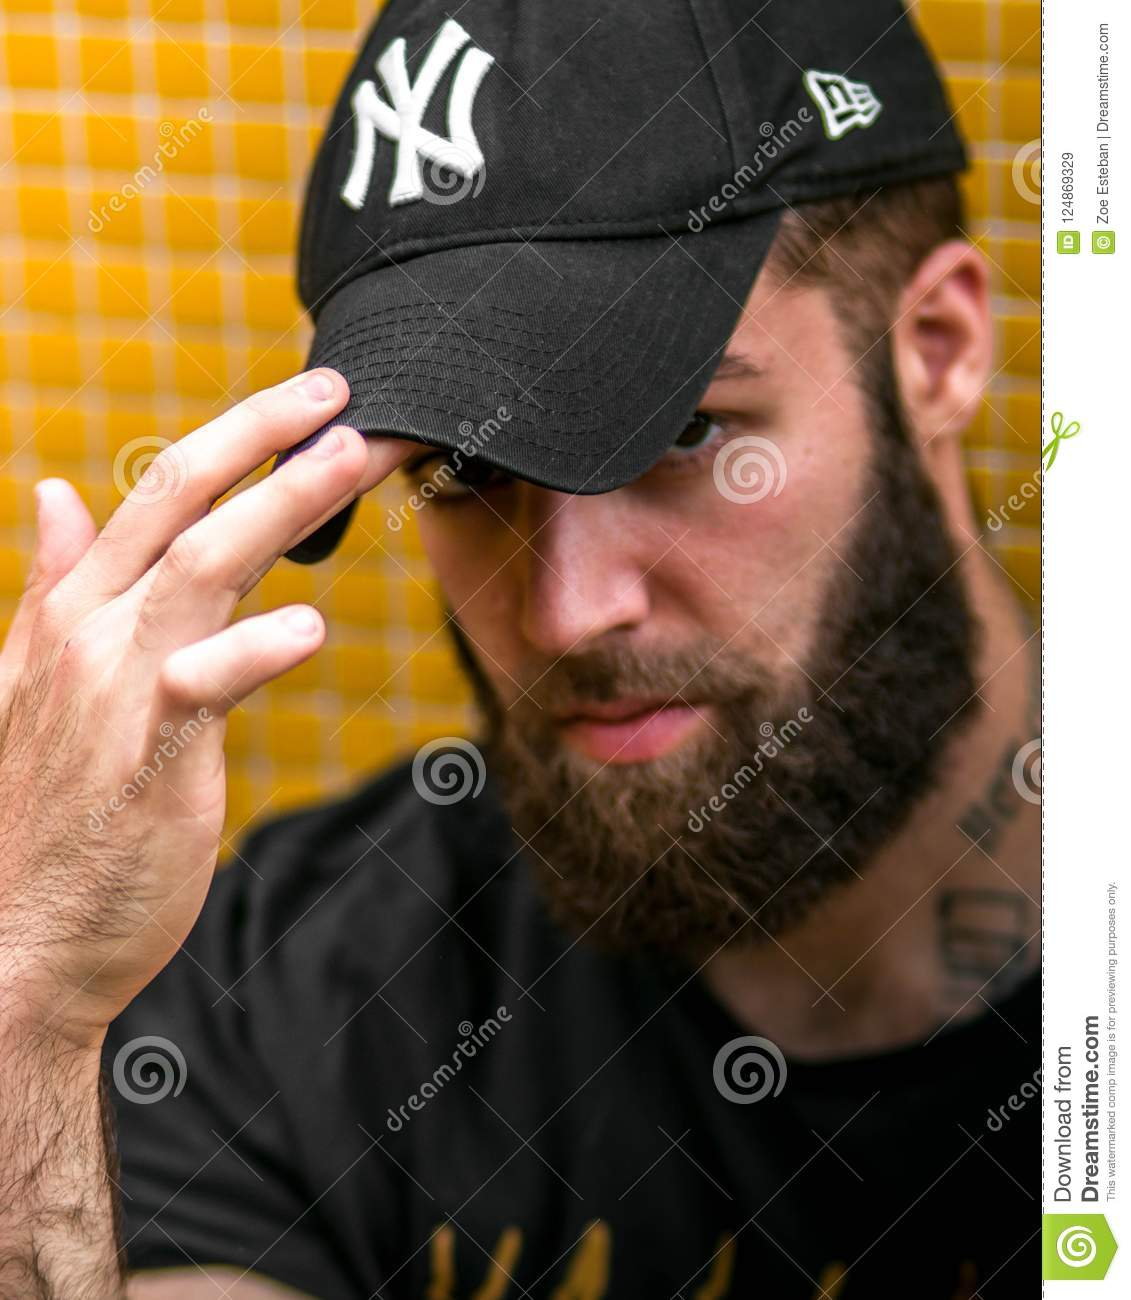 OVIEDO, ASTURIAS. SPAIN -JULY 5, 2018. Portrait of a young hipster tattooed man with New York Yankees hat